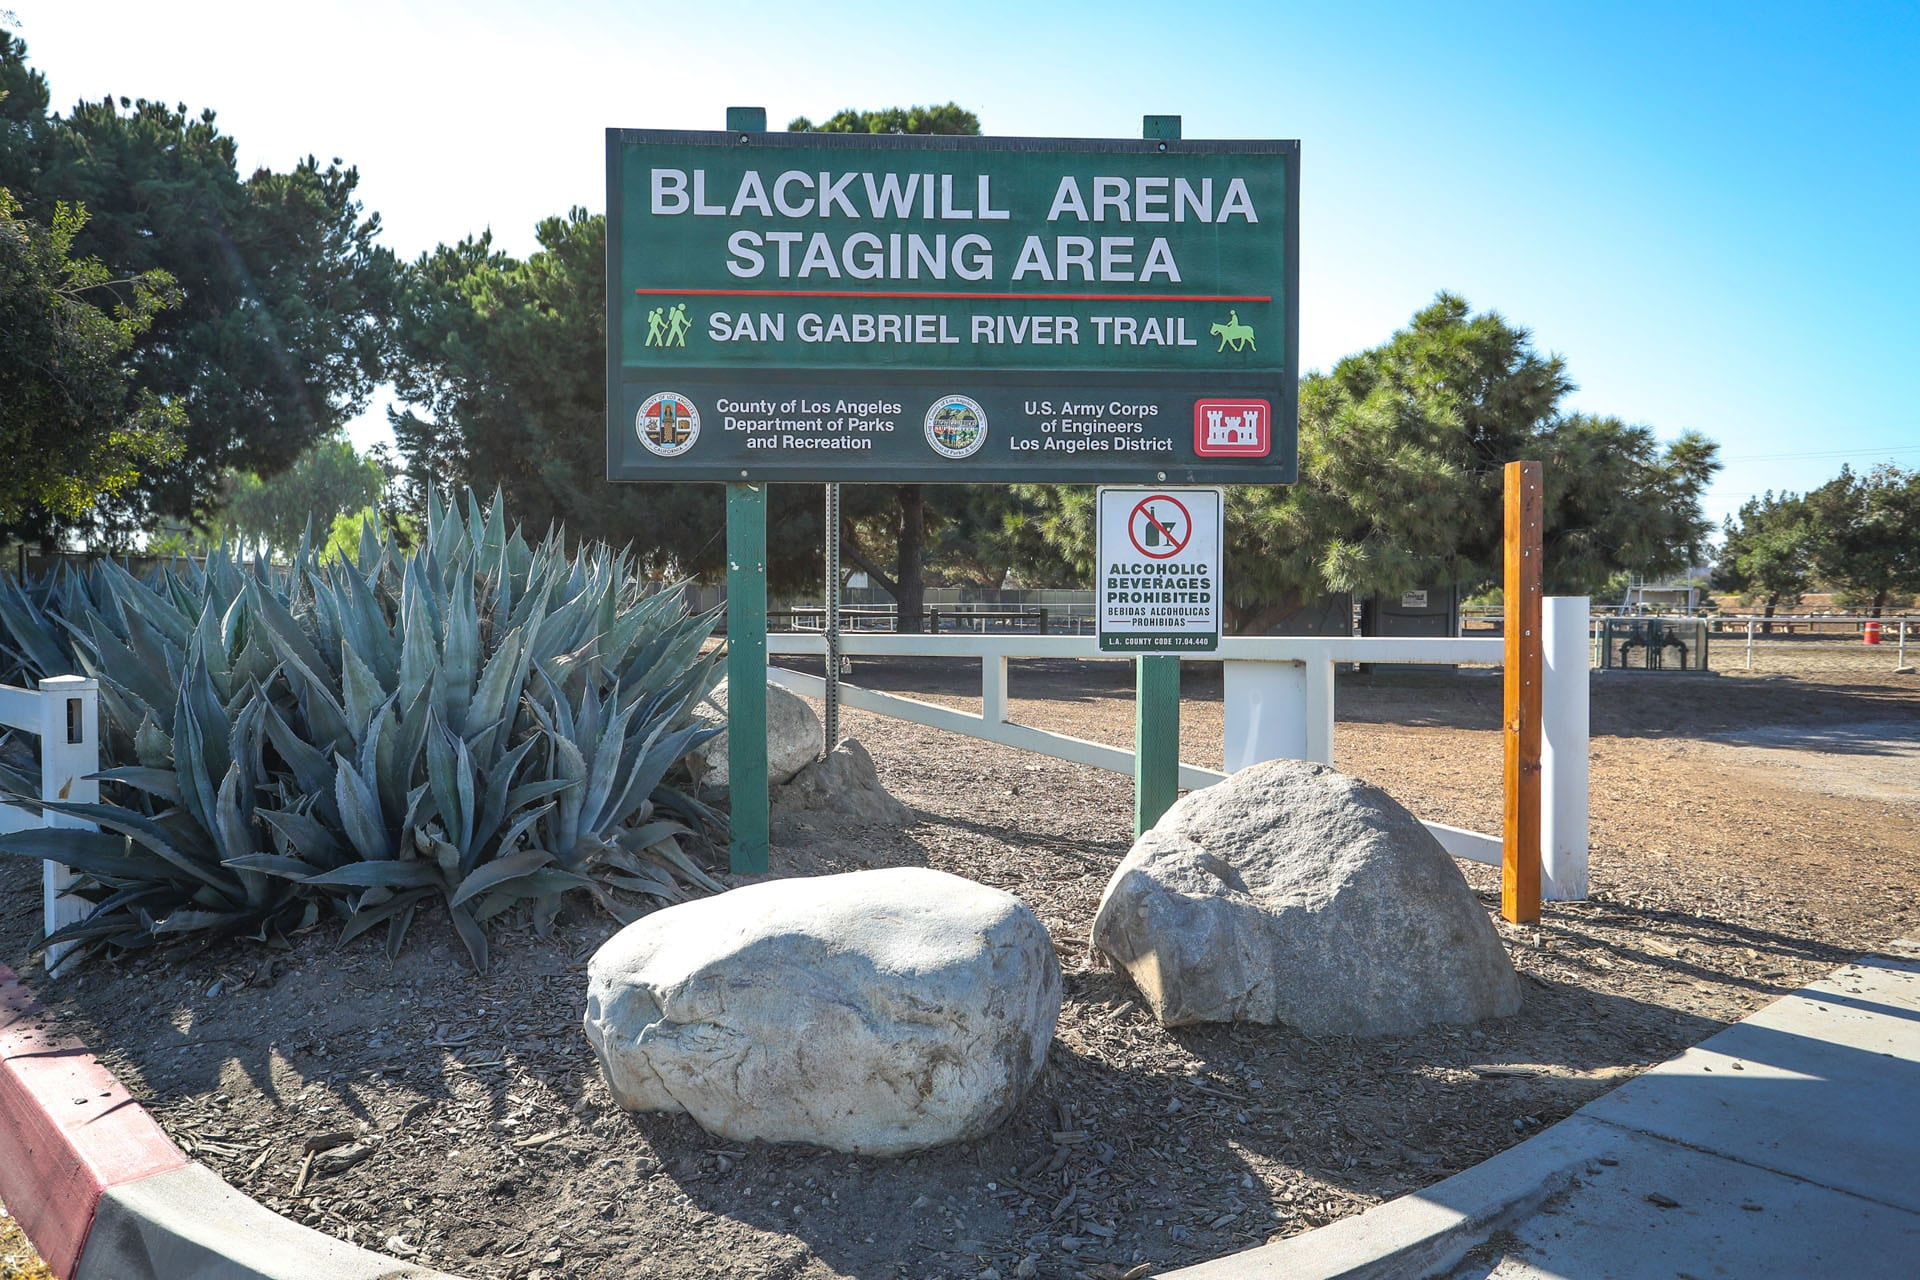 Blackwill Equestrian Staging Area sign